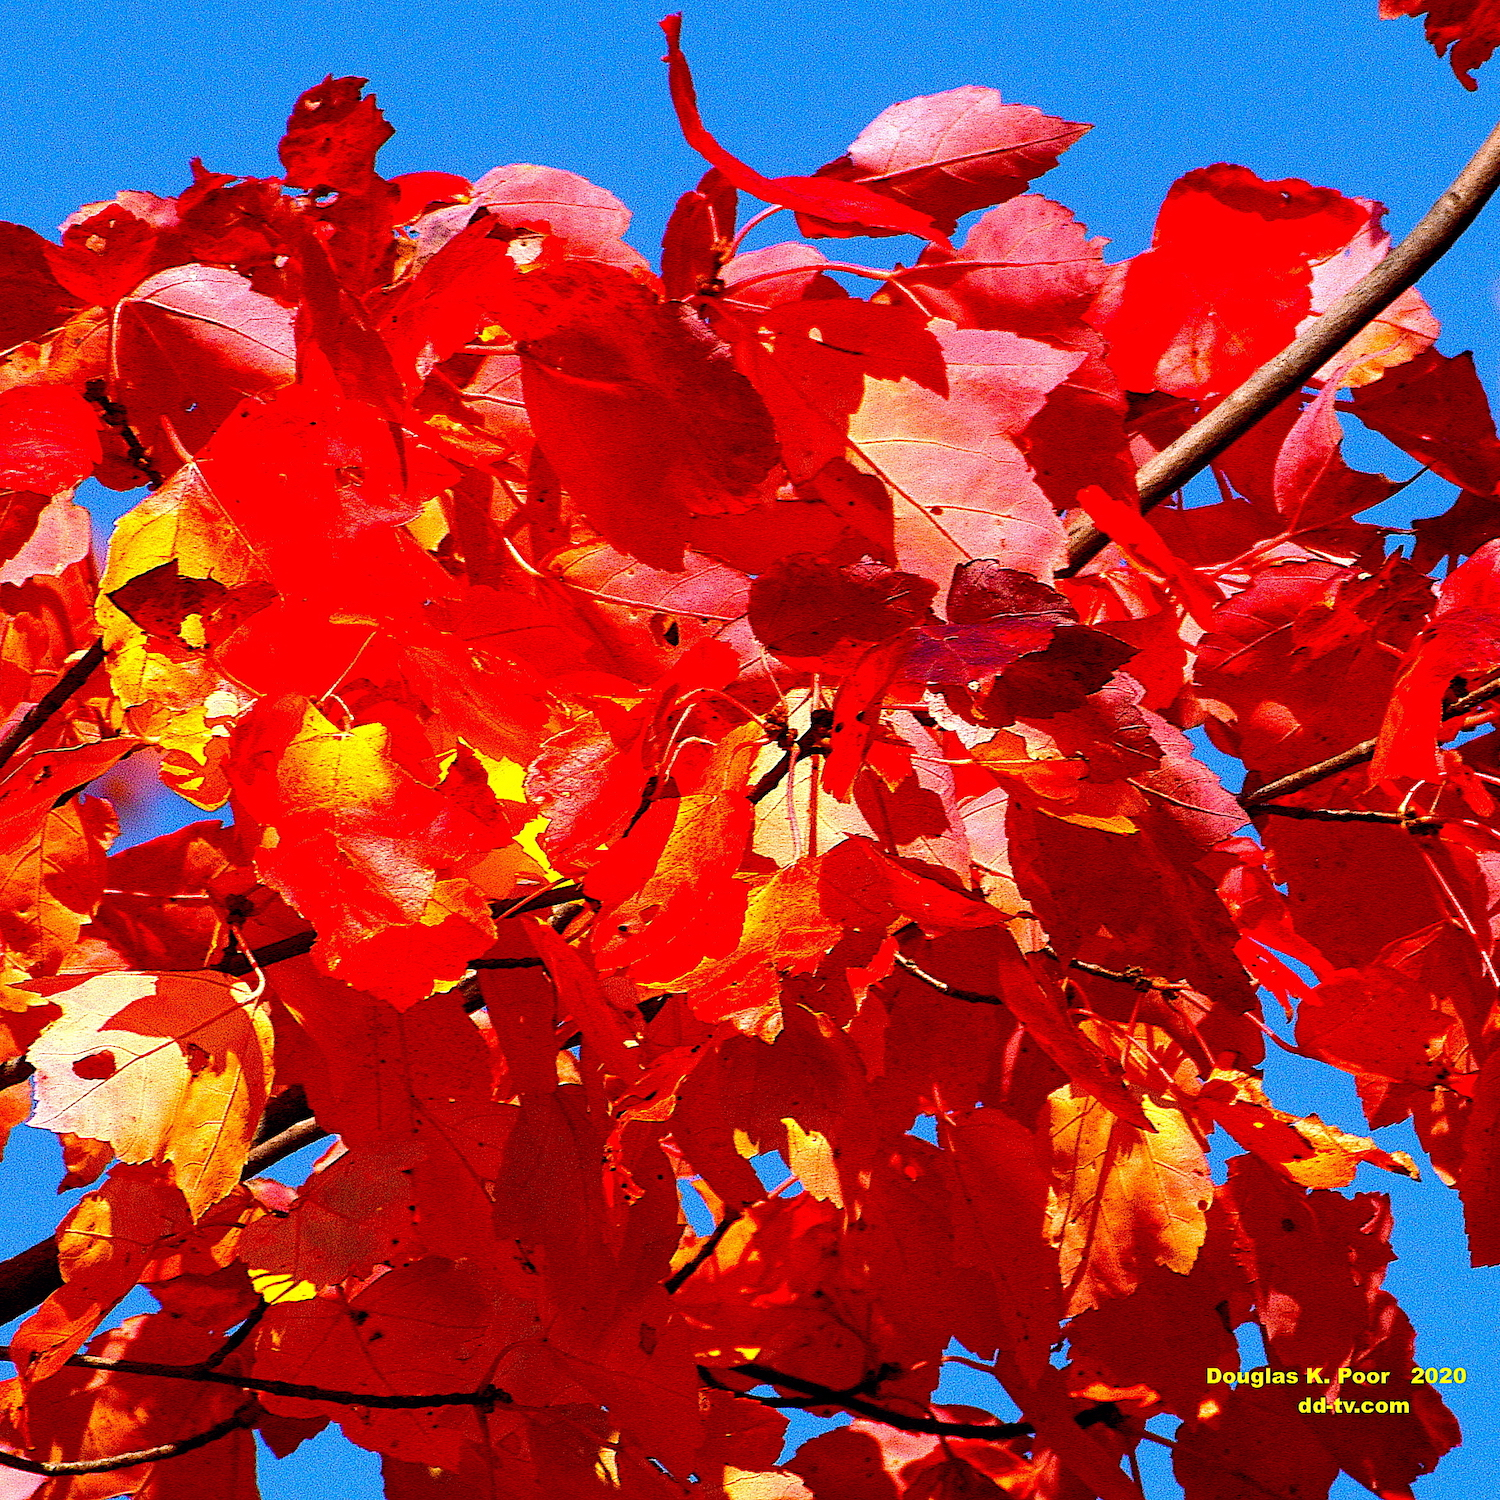 ================-CLUMP-OF-MAPLE-LEAVES-AND-BLUE-SKY-CLOSE-smaller-size==========================================================================================================-CLUMP-OF-MAPLE-LEAVES-AND-BLUE-SKY-CLOSE-smaller-size==========